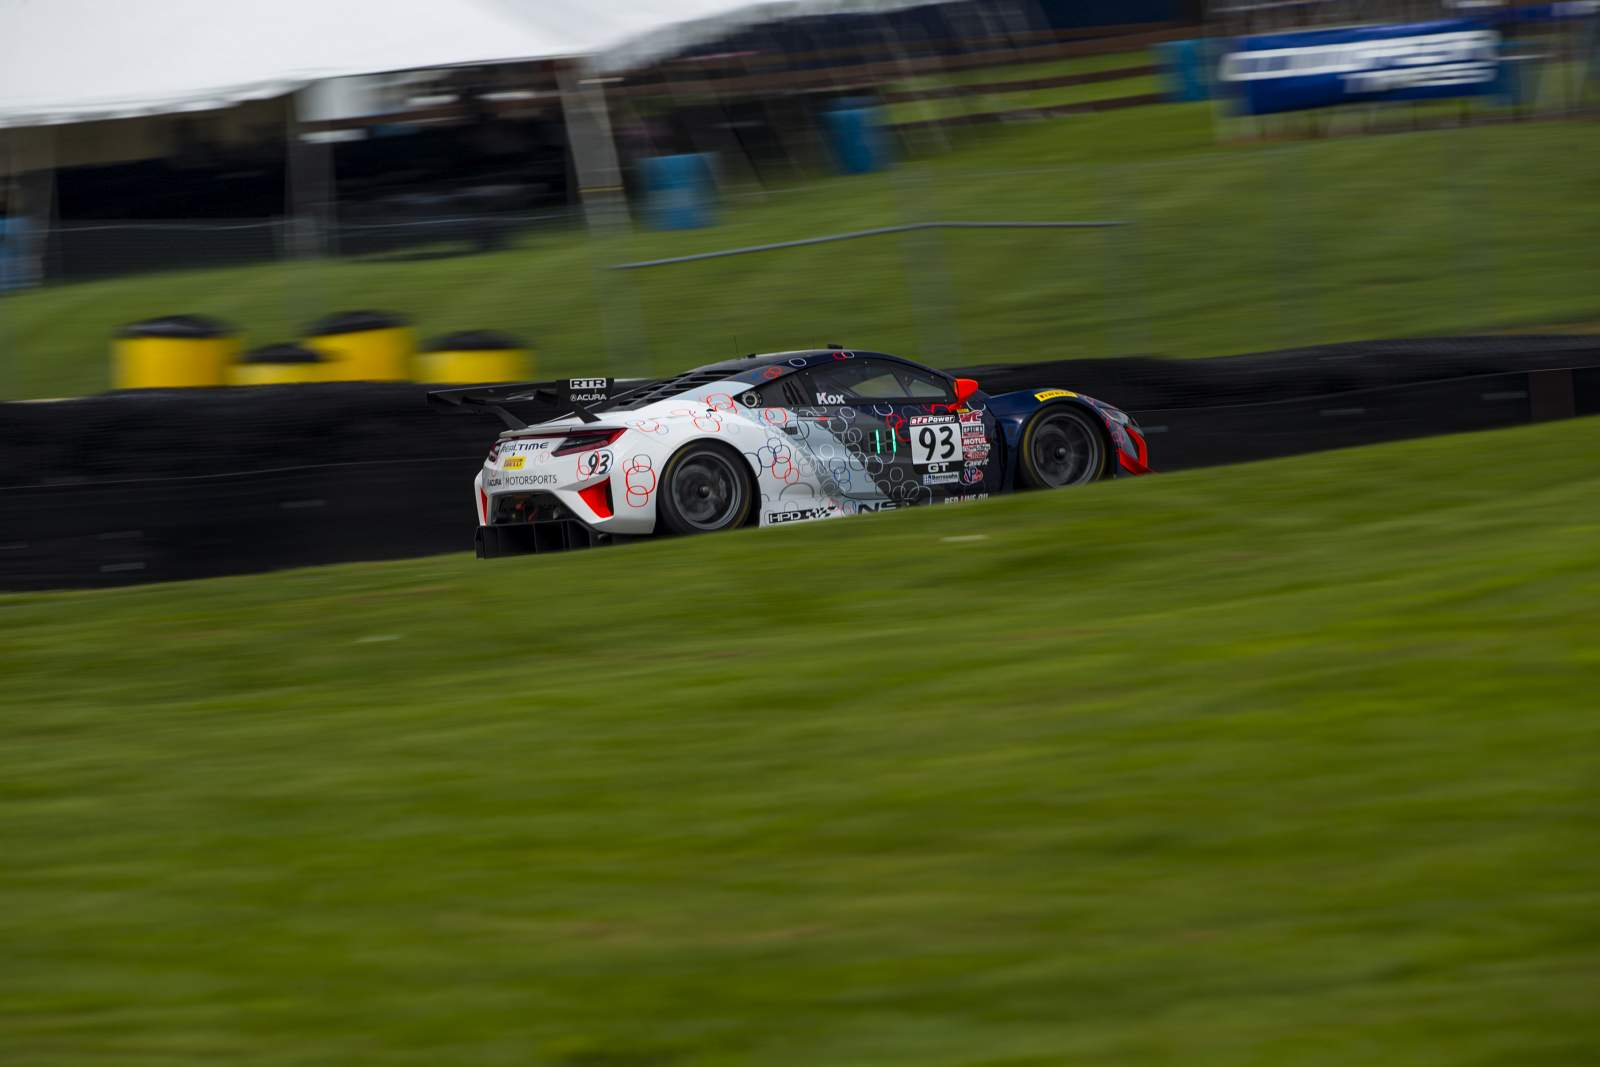 peter-kox-realtime-racing-pirelli-world-challenge-mid-ohio-13